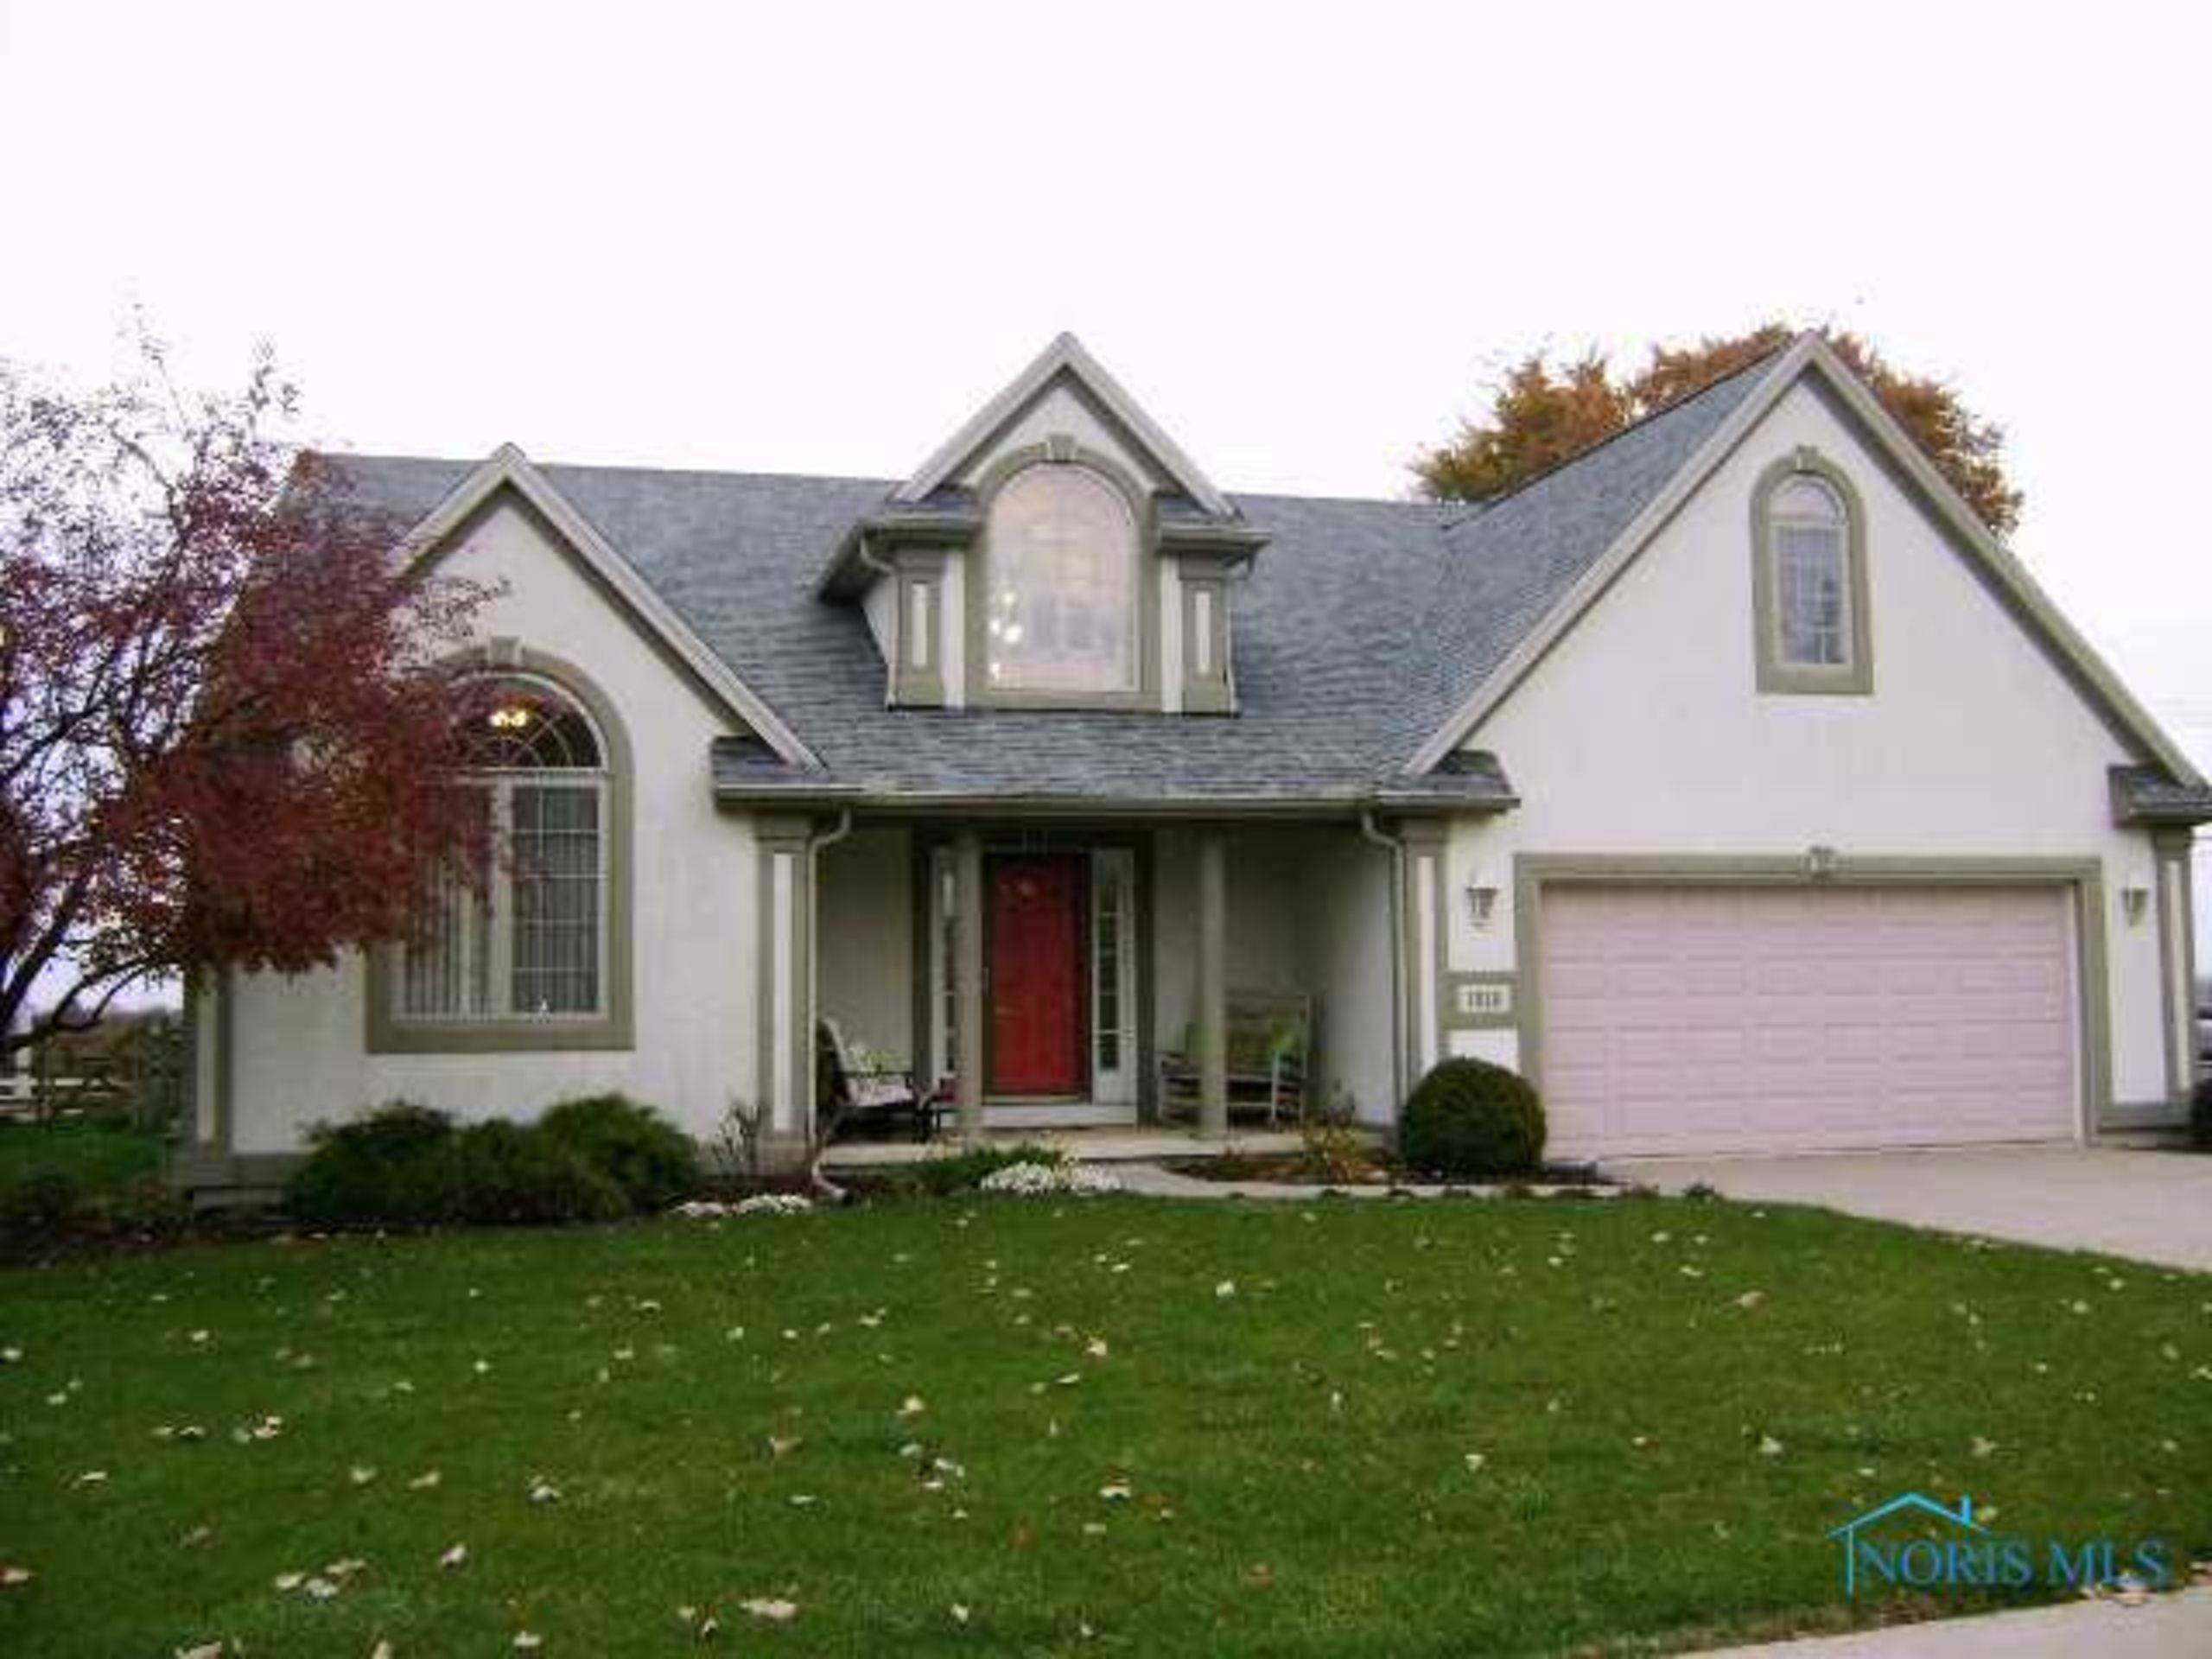 Featured Home! 7010 Twin Lakes Perrysburg Ohio 43551 List Price: $239,900